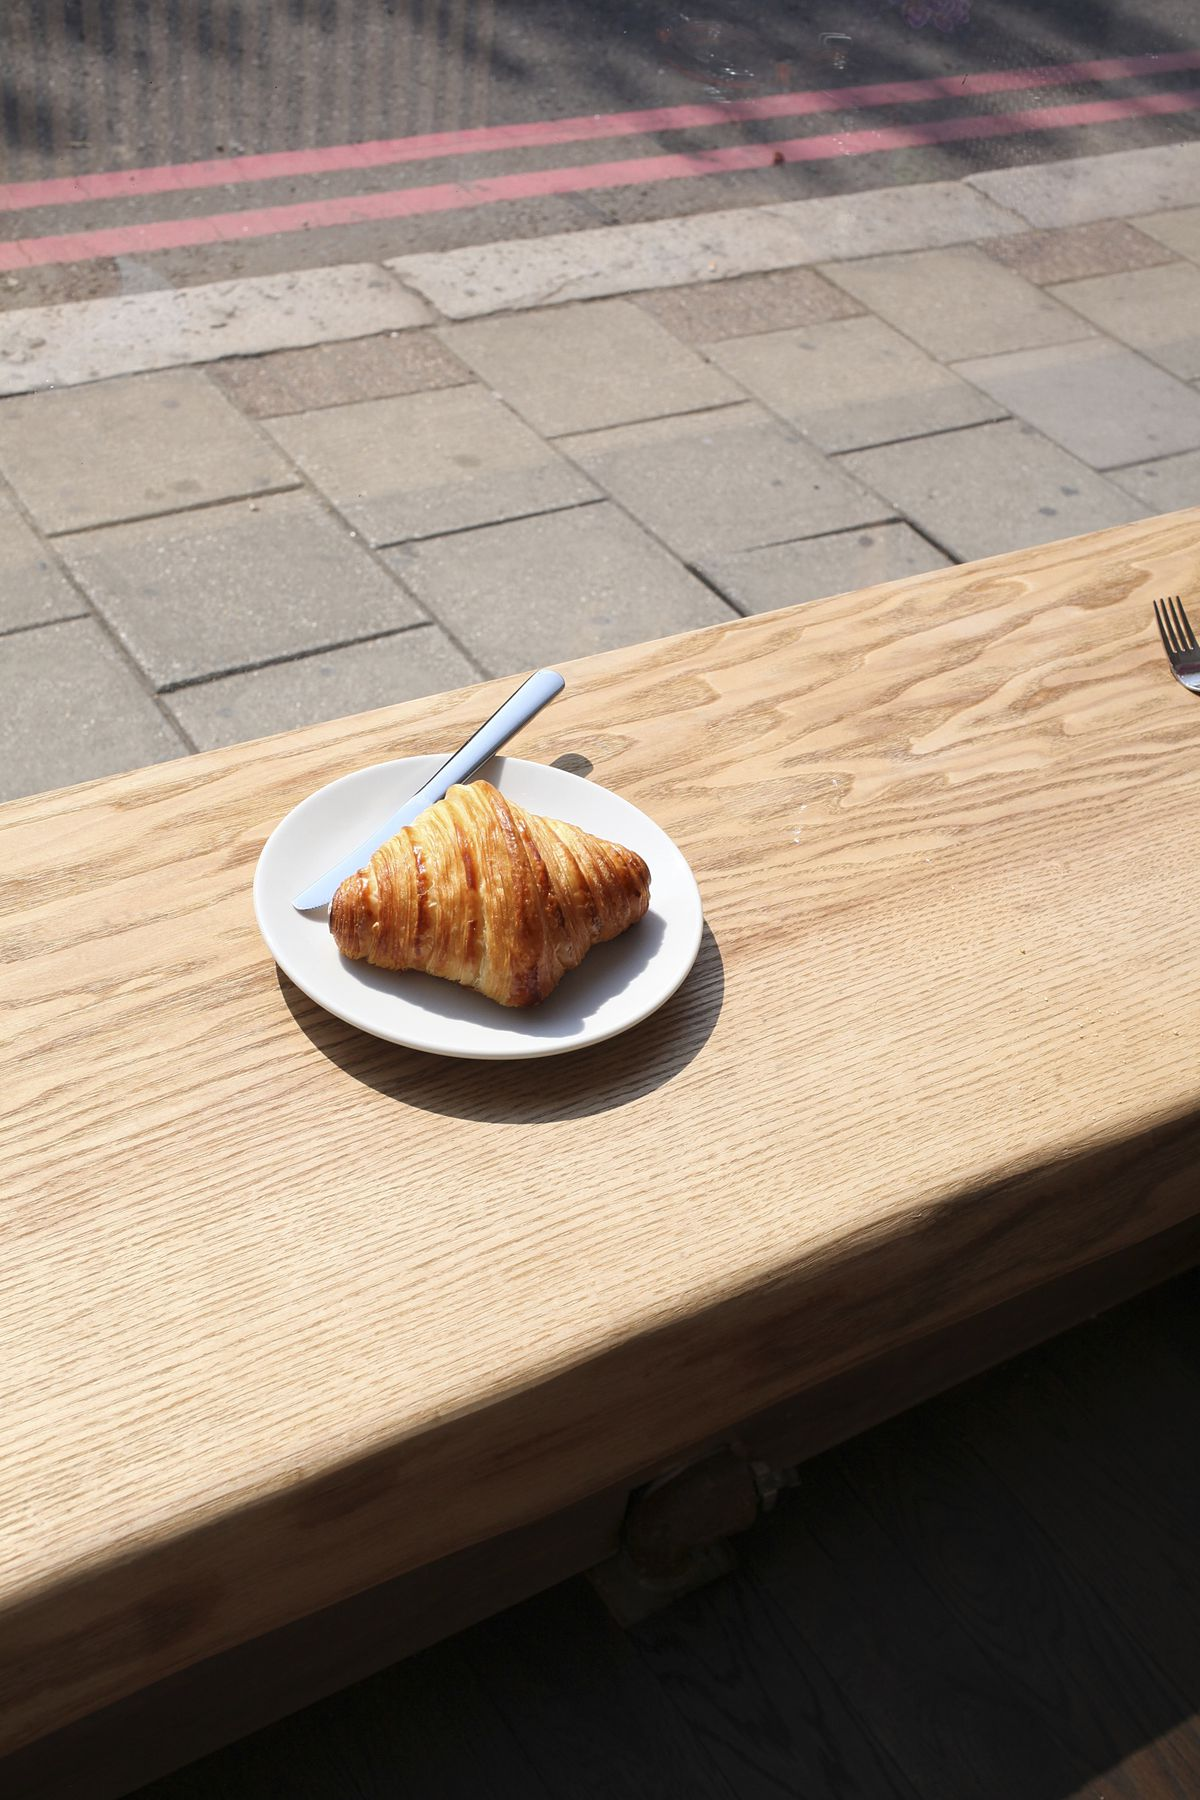 A single croissant on a white plate in the sunshine, sitting on a wooden bench, at Kapihan Battersea